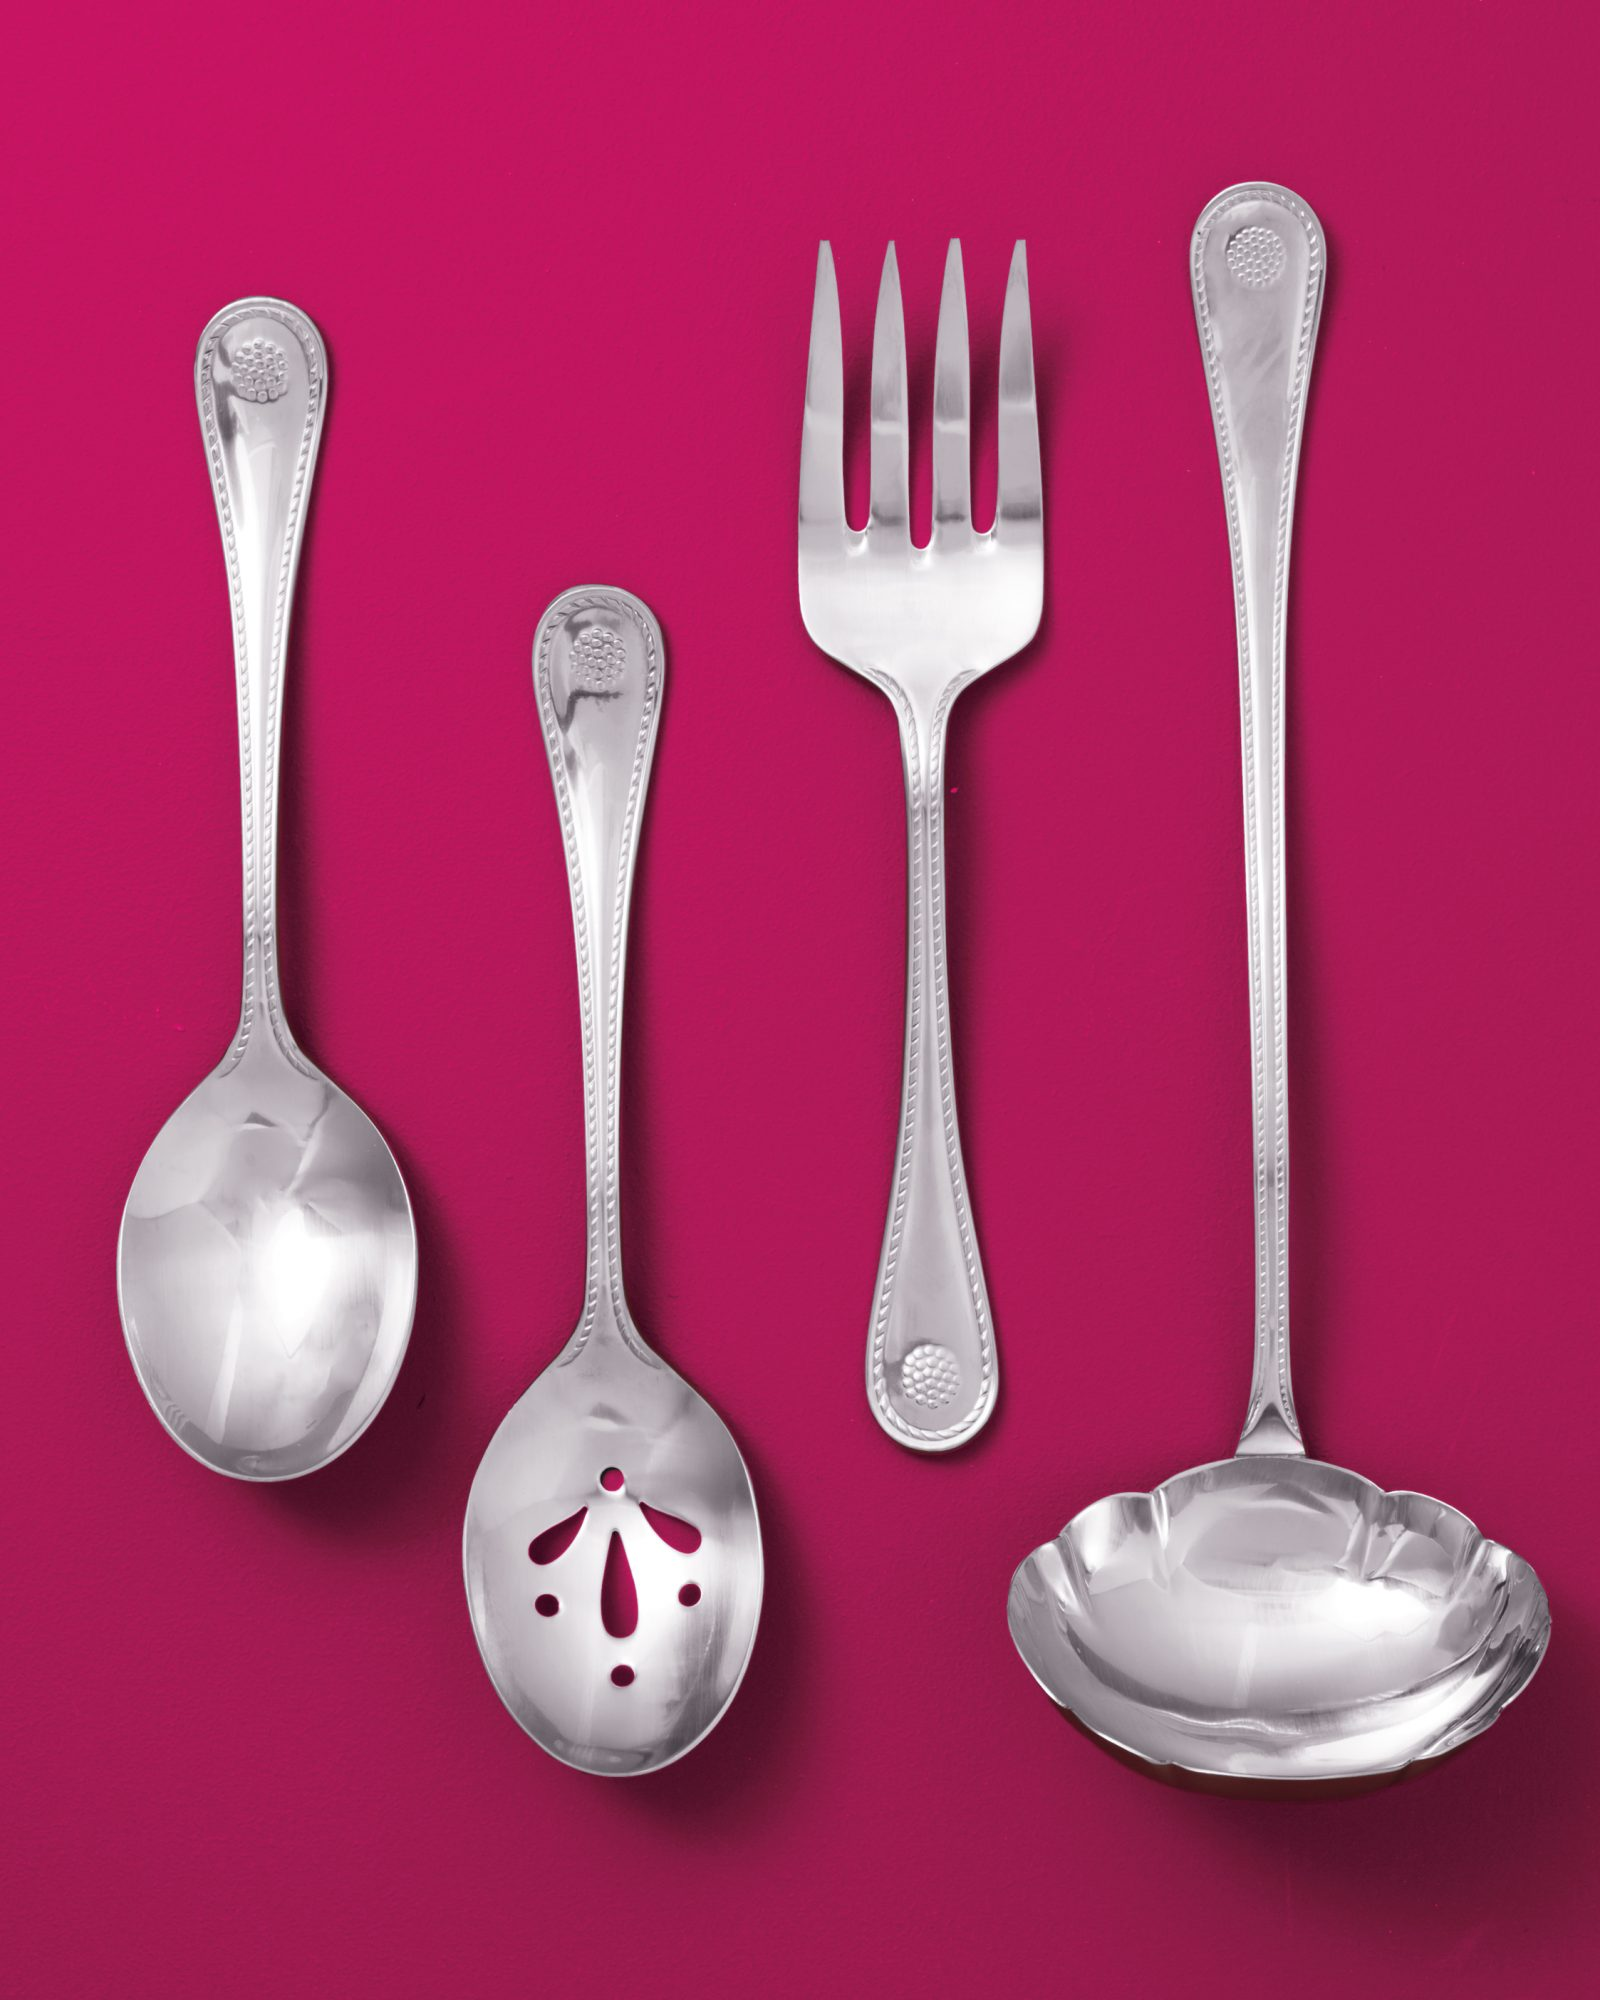 U is for Utensils